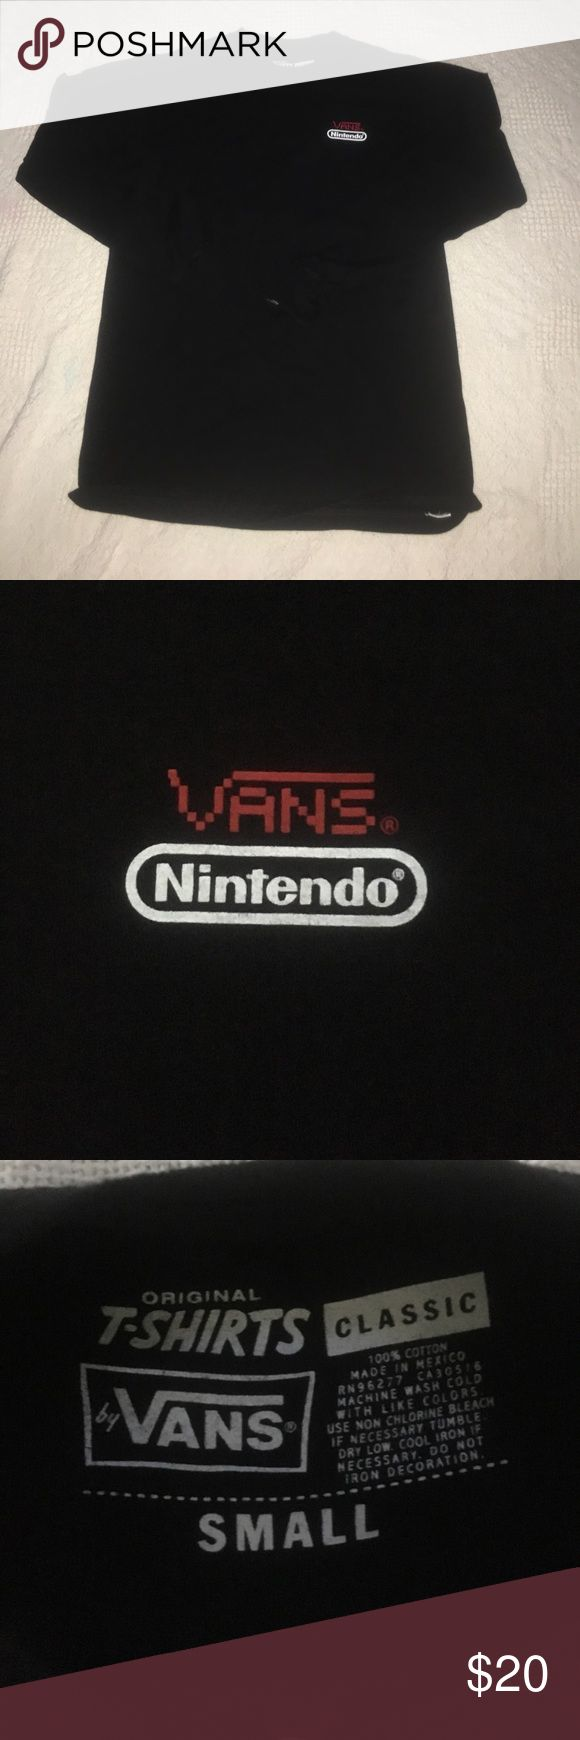 Vans limited edition Nintendo means long sleeve T Vans limited edition Nintendo long sleeve shirt for men Vans Shirts Tees - Long Sleeve